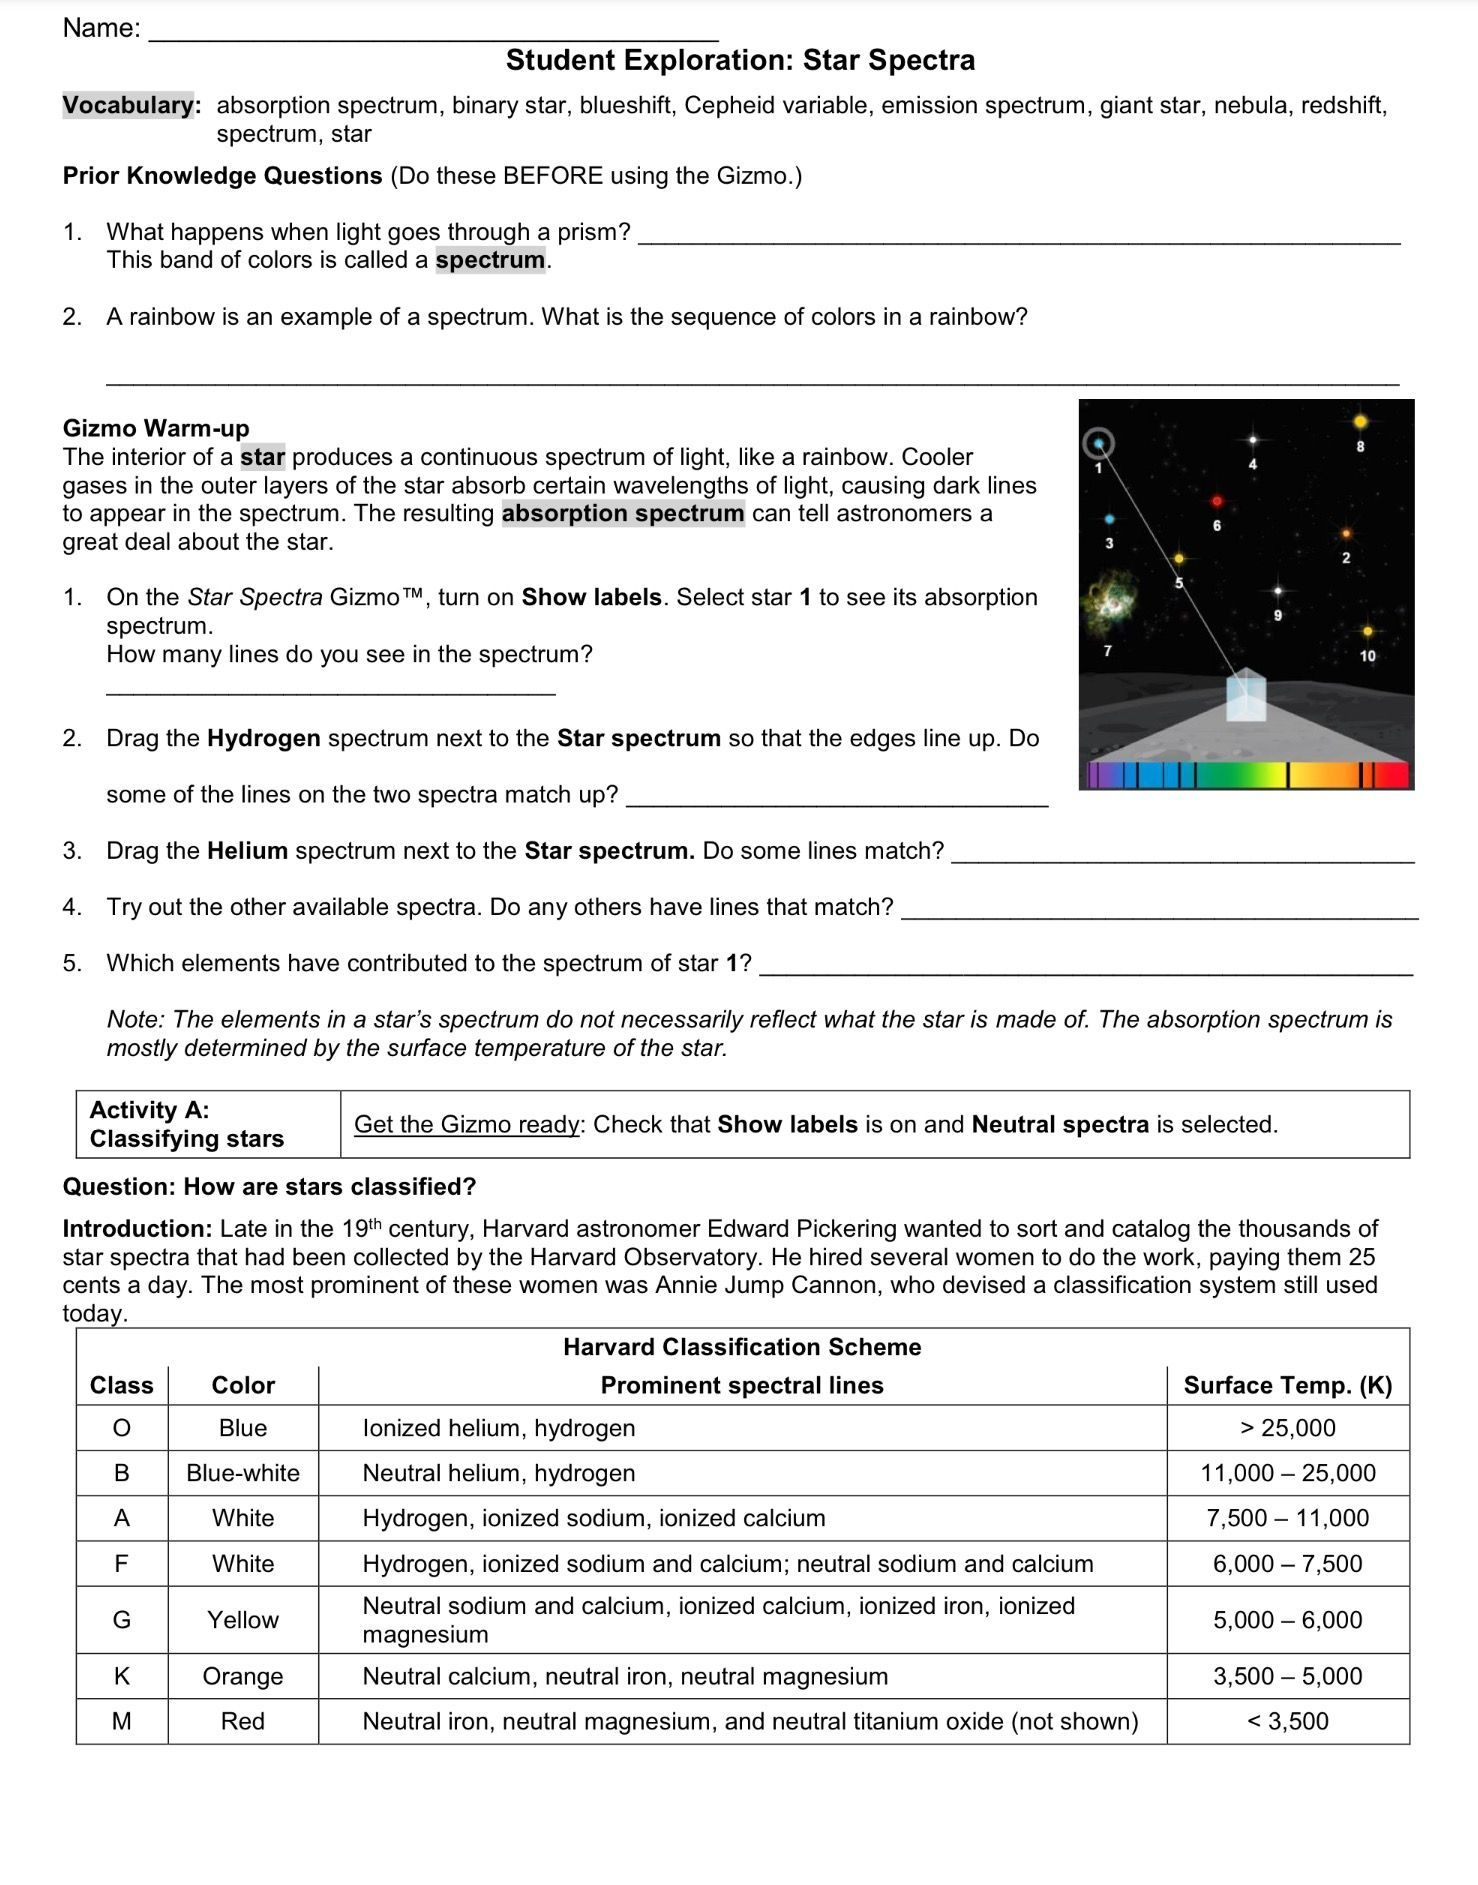 Atomic Spectra Worksheet Answers Worksheets Are A Crucial Portion Of Gaining Knowledge Of English Infant In 2021 Earth And Space Science Worksheet Template Spectrum [ 1885 x 1478 Pixel ]